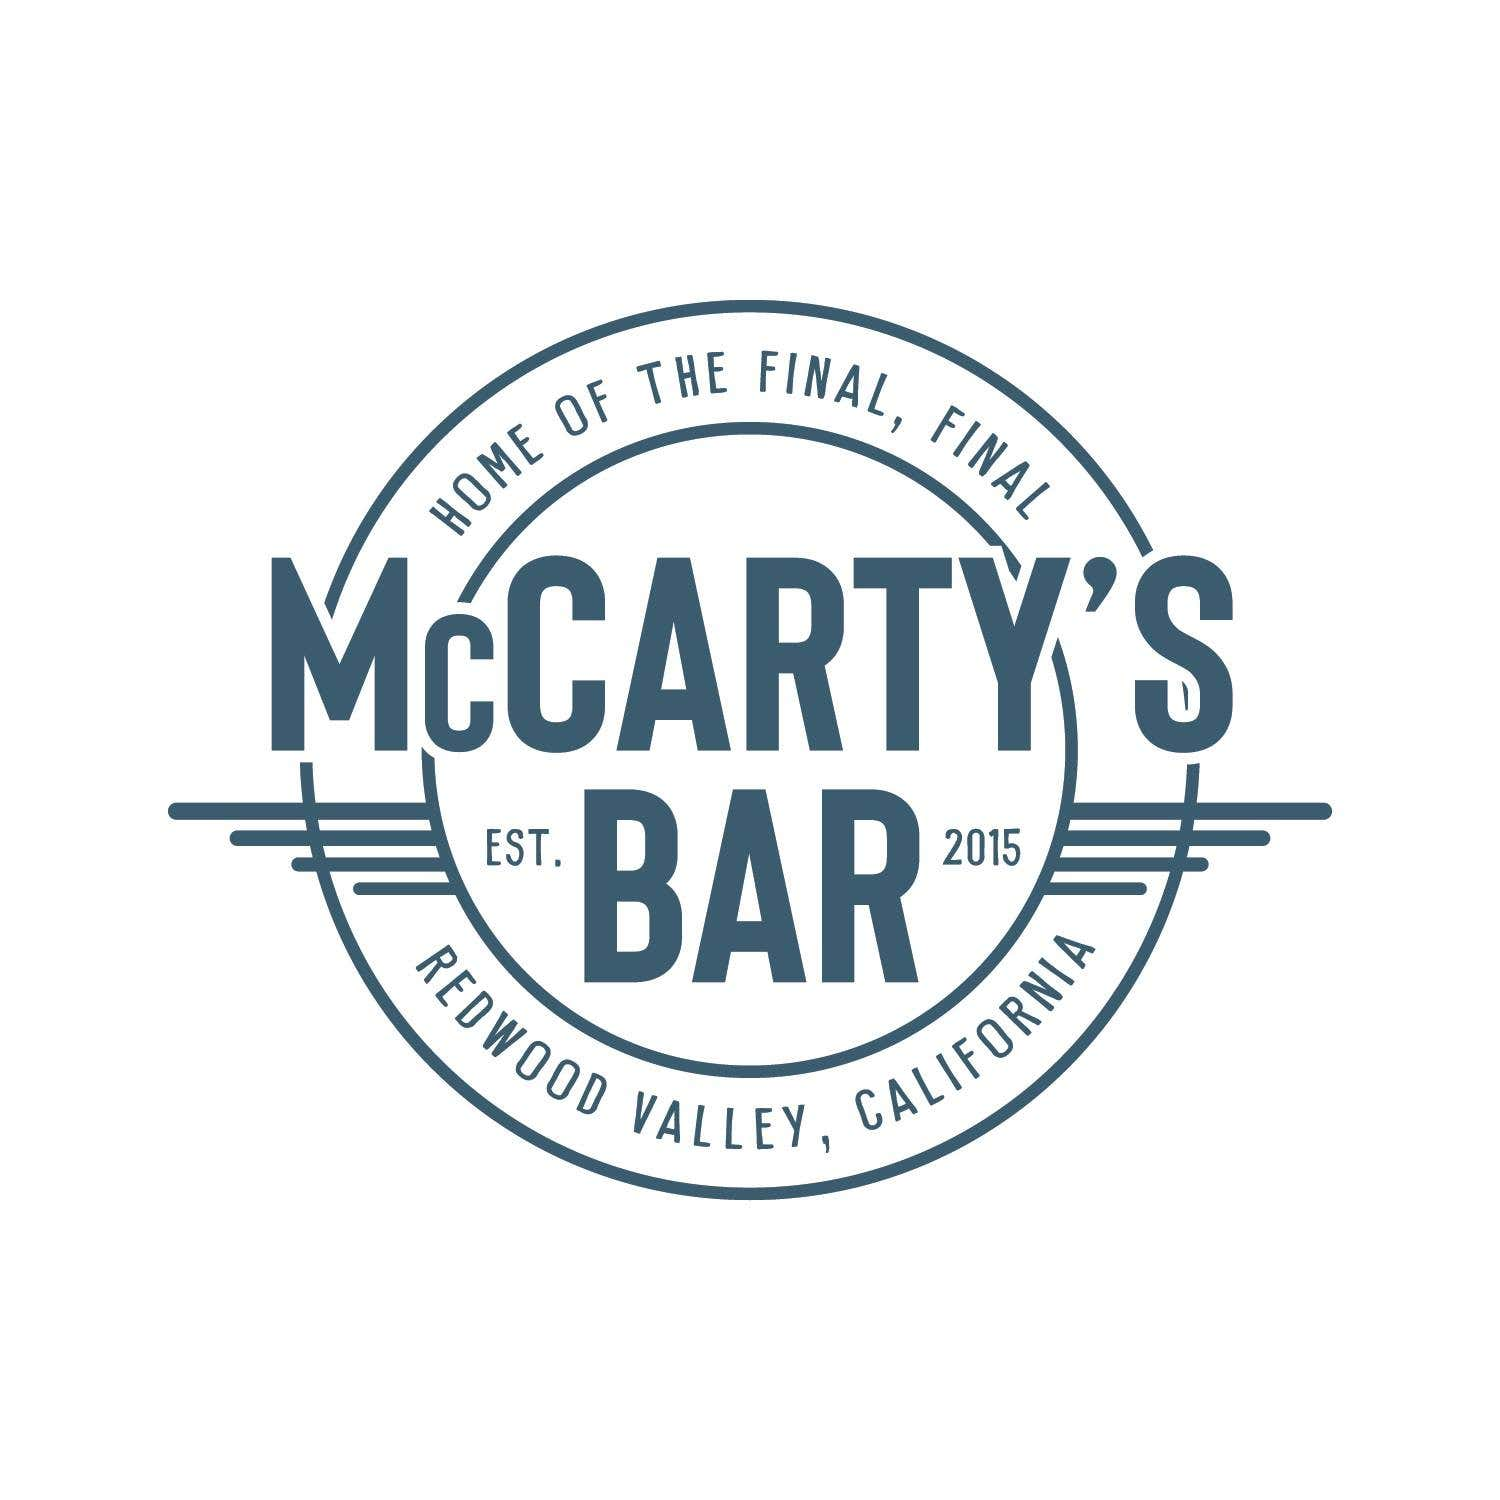 McCarty's Bar & Grill